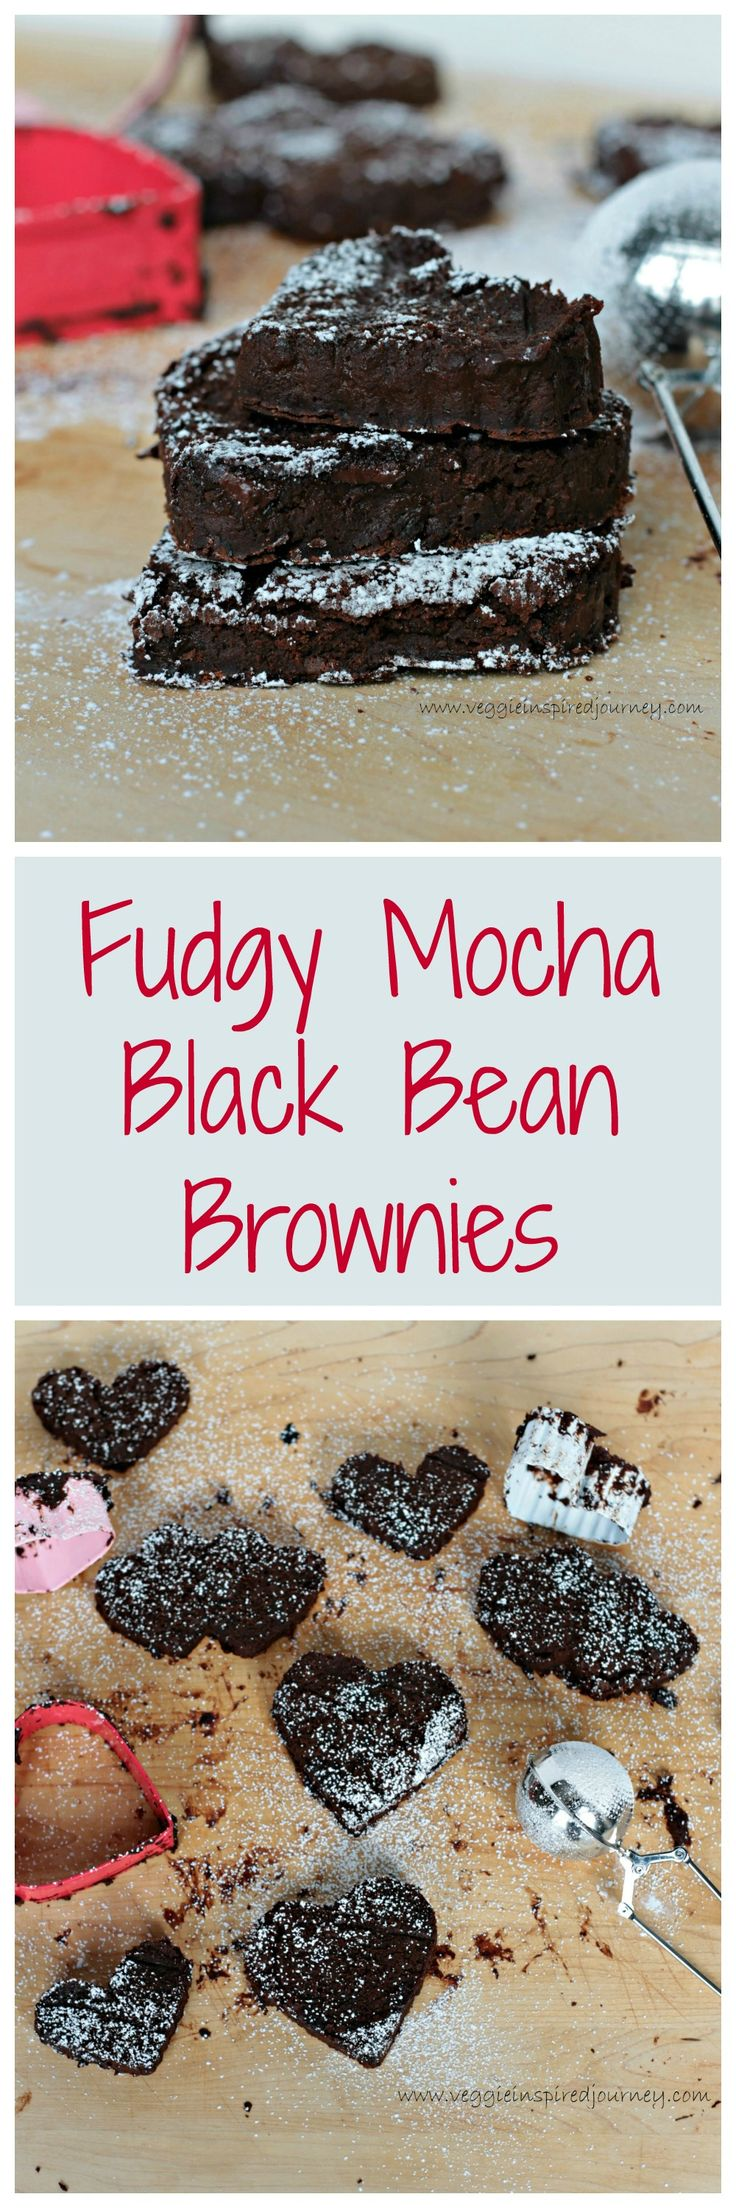 Fudgy Mocha Black Bean Brownie Hearts! So rich and chocolatey! You won't taste the black beans at all! #vegan #dairyfree #glutenfree #oilfree #healthy #dessert #brownies